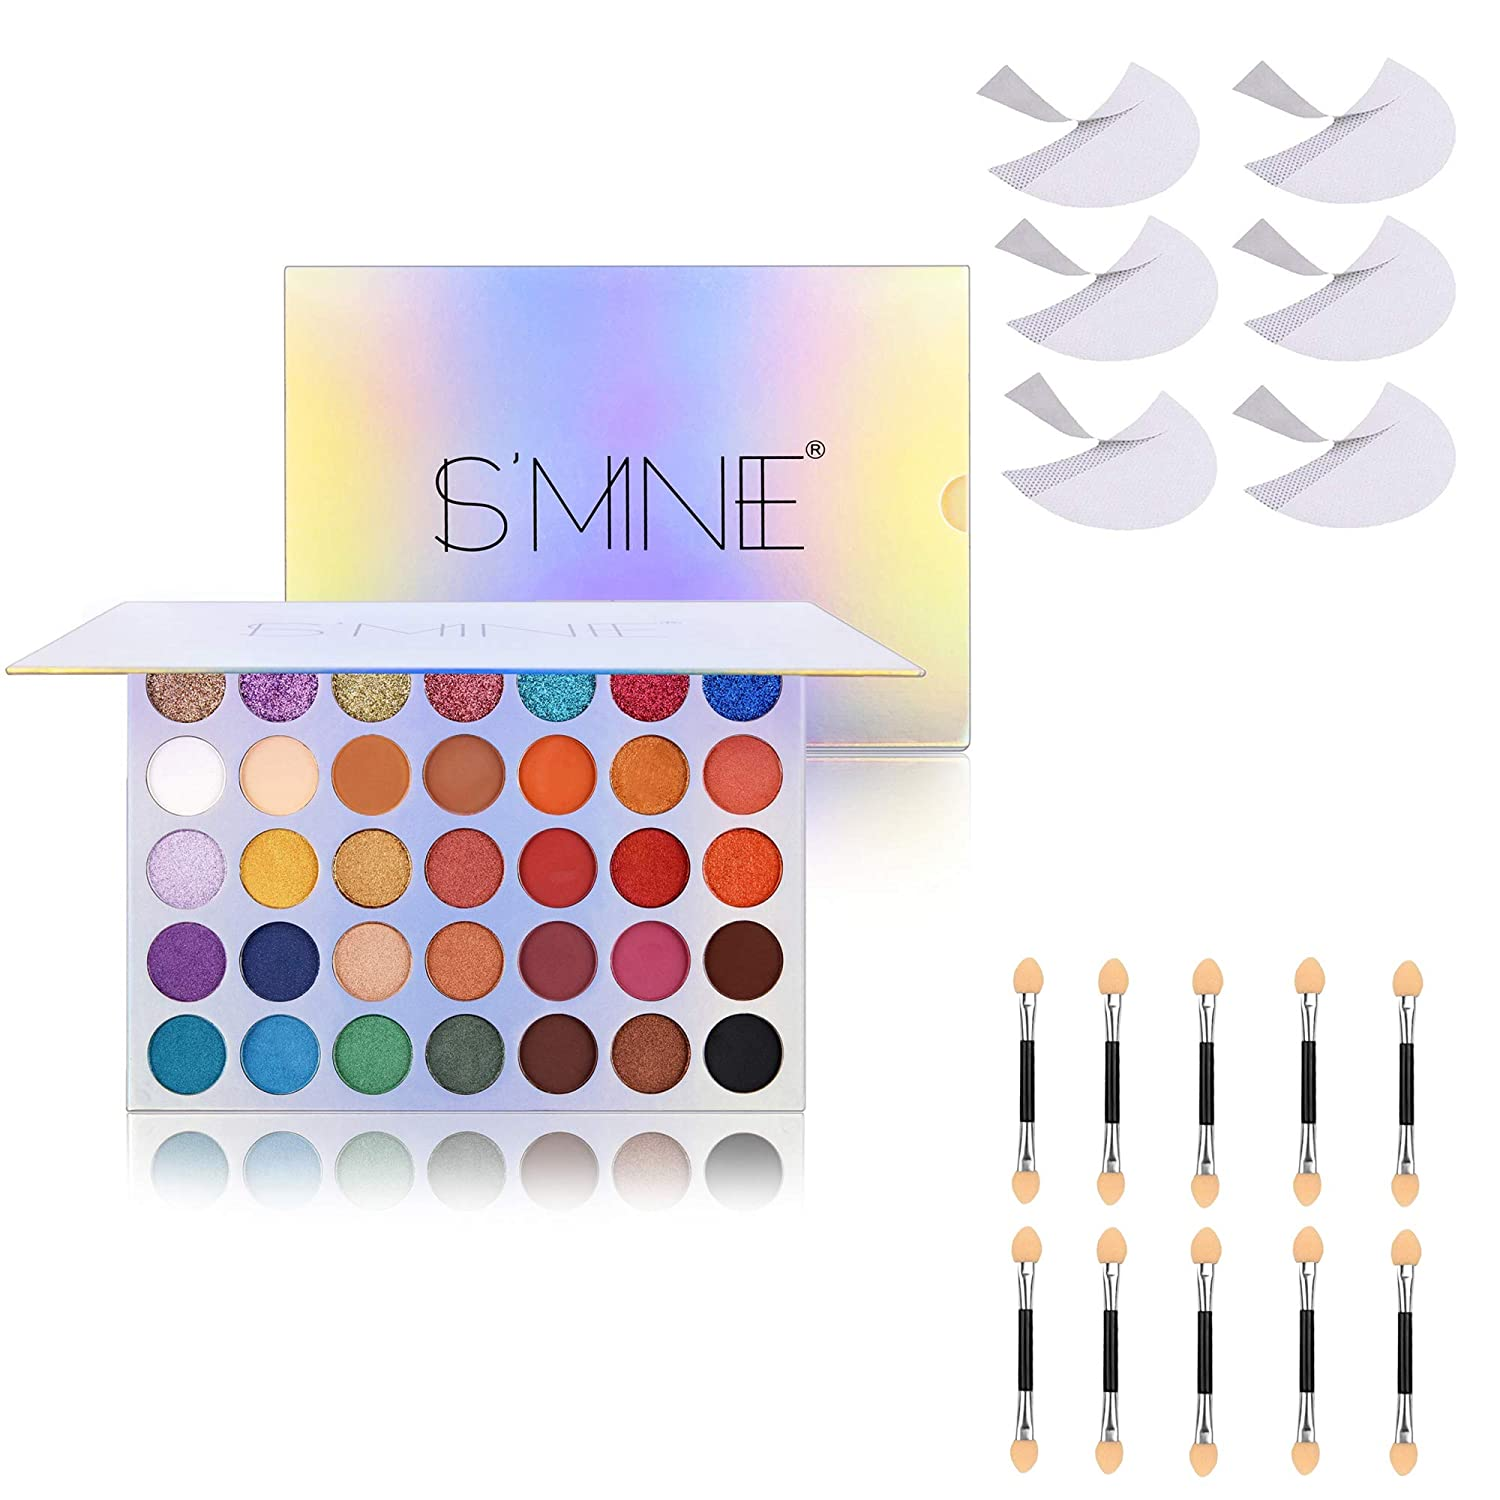 FANICEA Eyeshadow Palette Neutral High Pigmented 35 Colors Mattes Shimmers Long Lasting Waterproof Colorful Blendable Natural Custom Eyes Makeup Kit with Eyeshadow Shield and Sponge Applicators